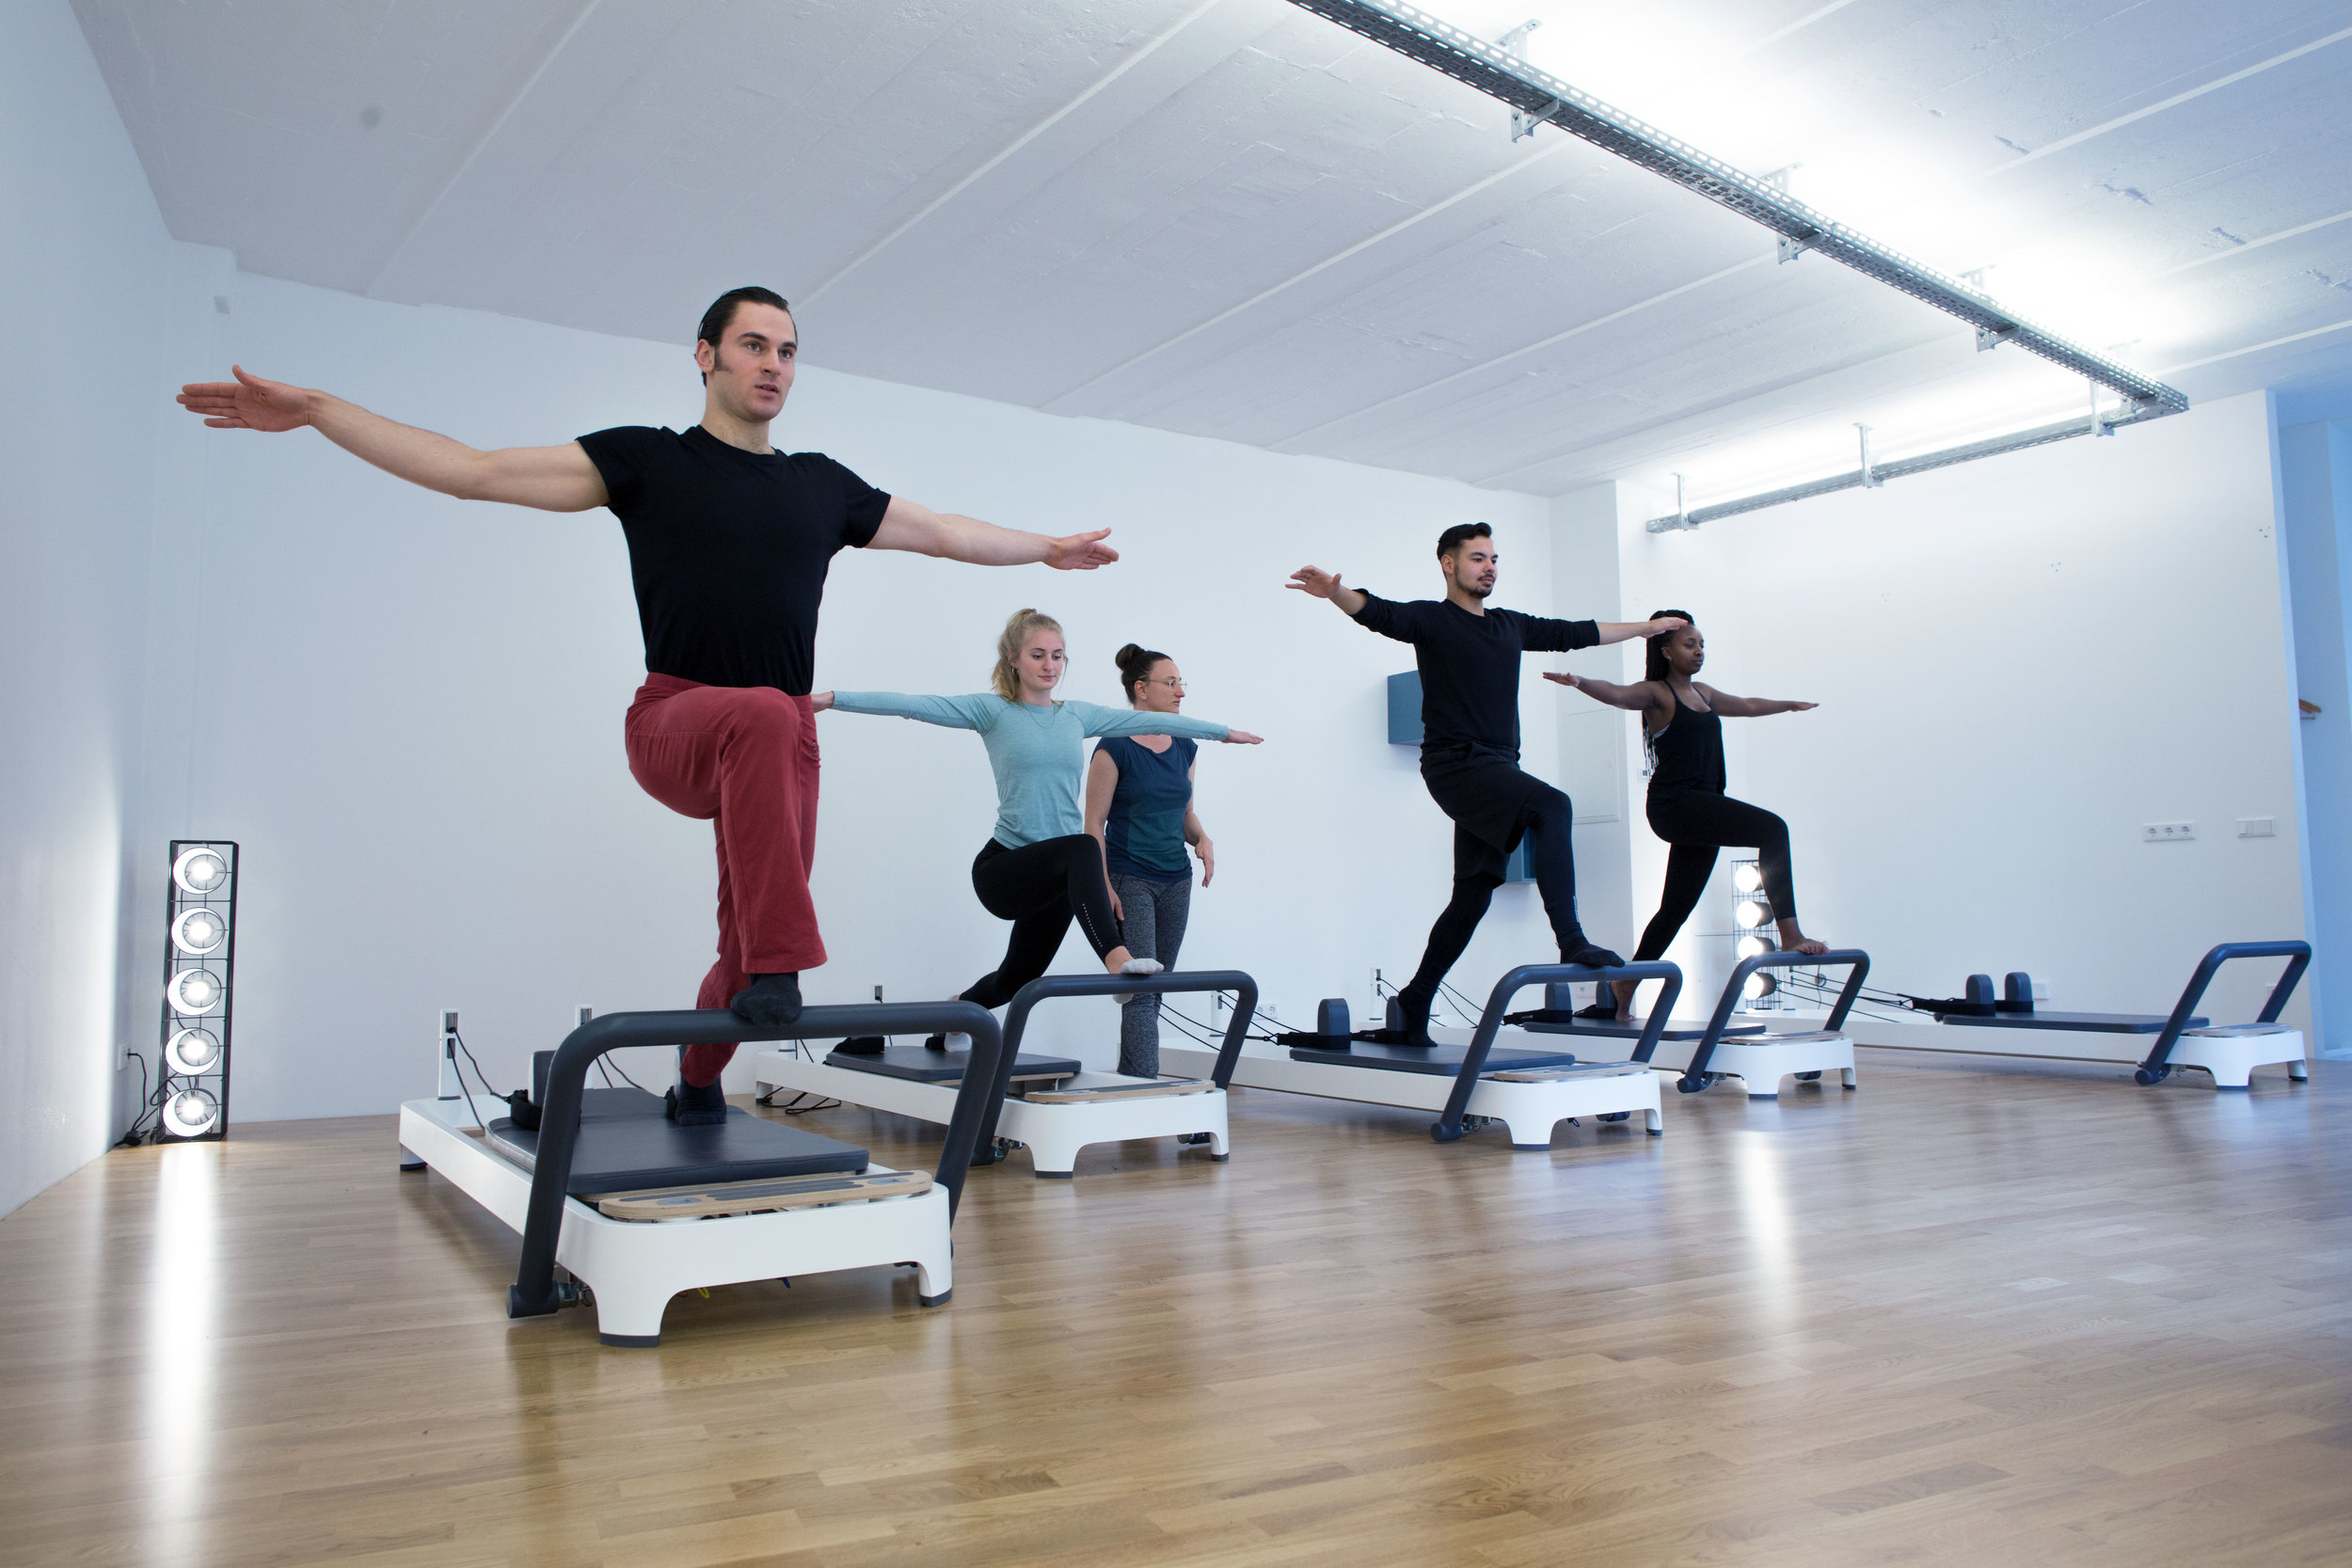 Girls and guys on a reformer pilates machine at Workout Berlin studio